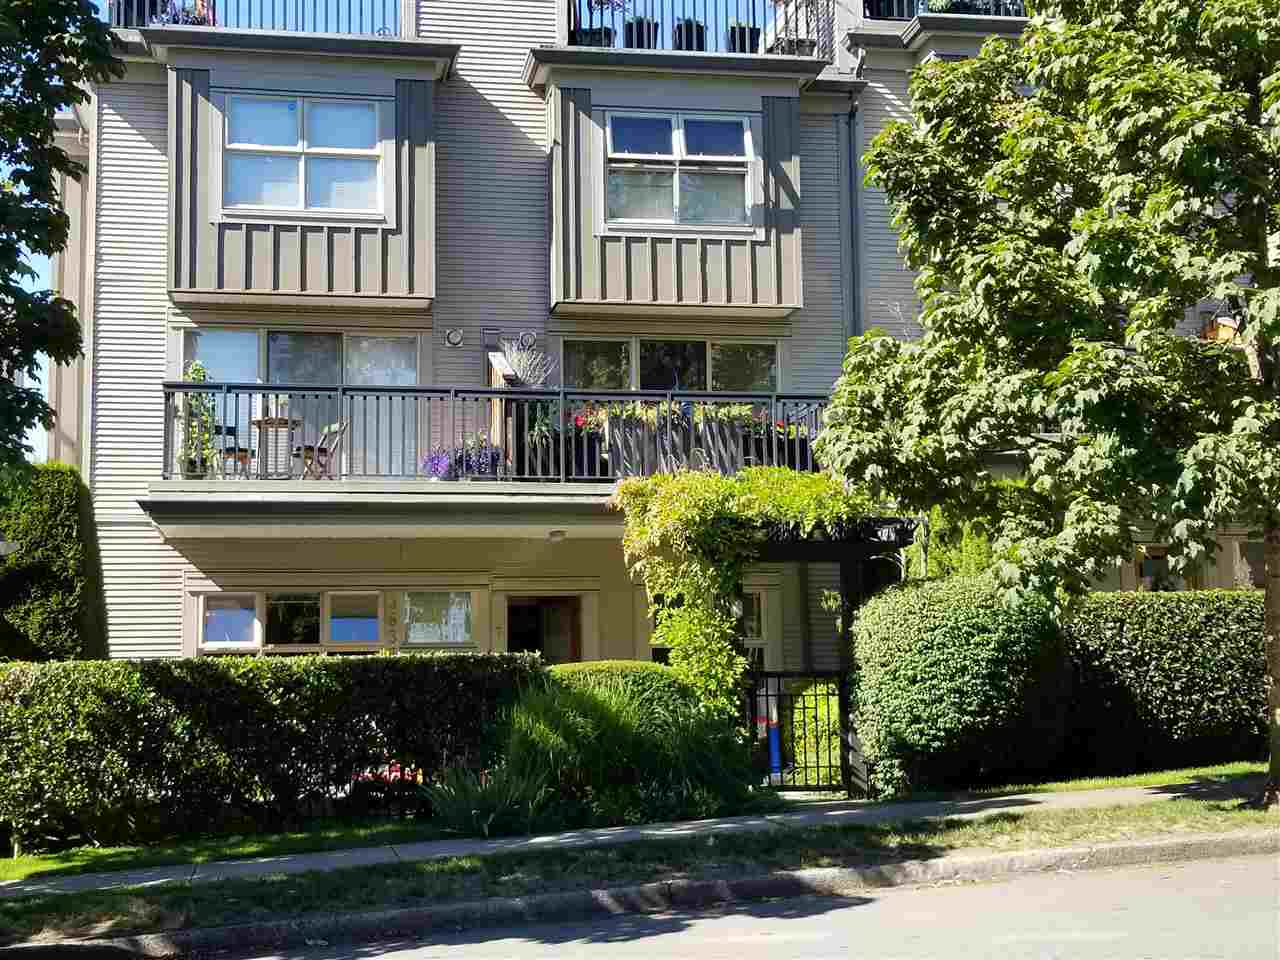 """Desirable garden level unit at Altura. This gorgeous 2 bedroom, 2 bathroom home has it all: Open-plan living/dining, overheight ceilings throughout. House sized kitchen with eating nook, plenty of cabinetry & counter space, 2 huge patio in front and back with separate entrance. This home feels like a house with spacious rooms & a fully fenced yard & garden. If needed, you can easily convert dining area into the 3rd bedroom. Located in """"The Heights"""" - You can walk to almost everything, like the park, bank, post office, grocery stores, coffee shops, schools & community centre. Downtown is just 15 minutes away. This home also comes with secure underground parking & a large storage locker. For appt please Touchbase or Text Helen"""